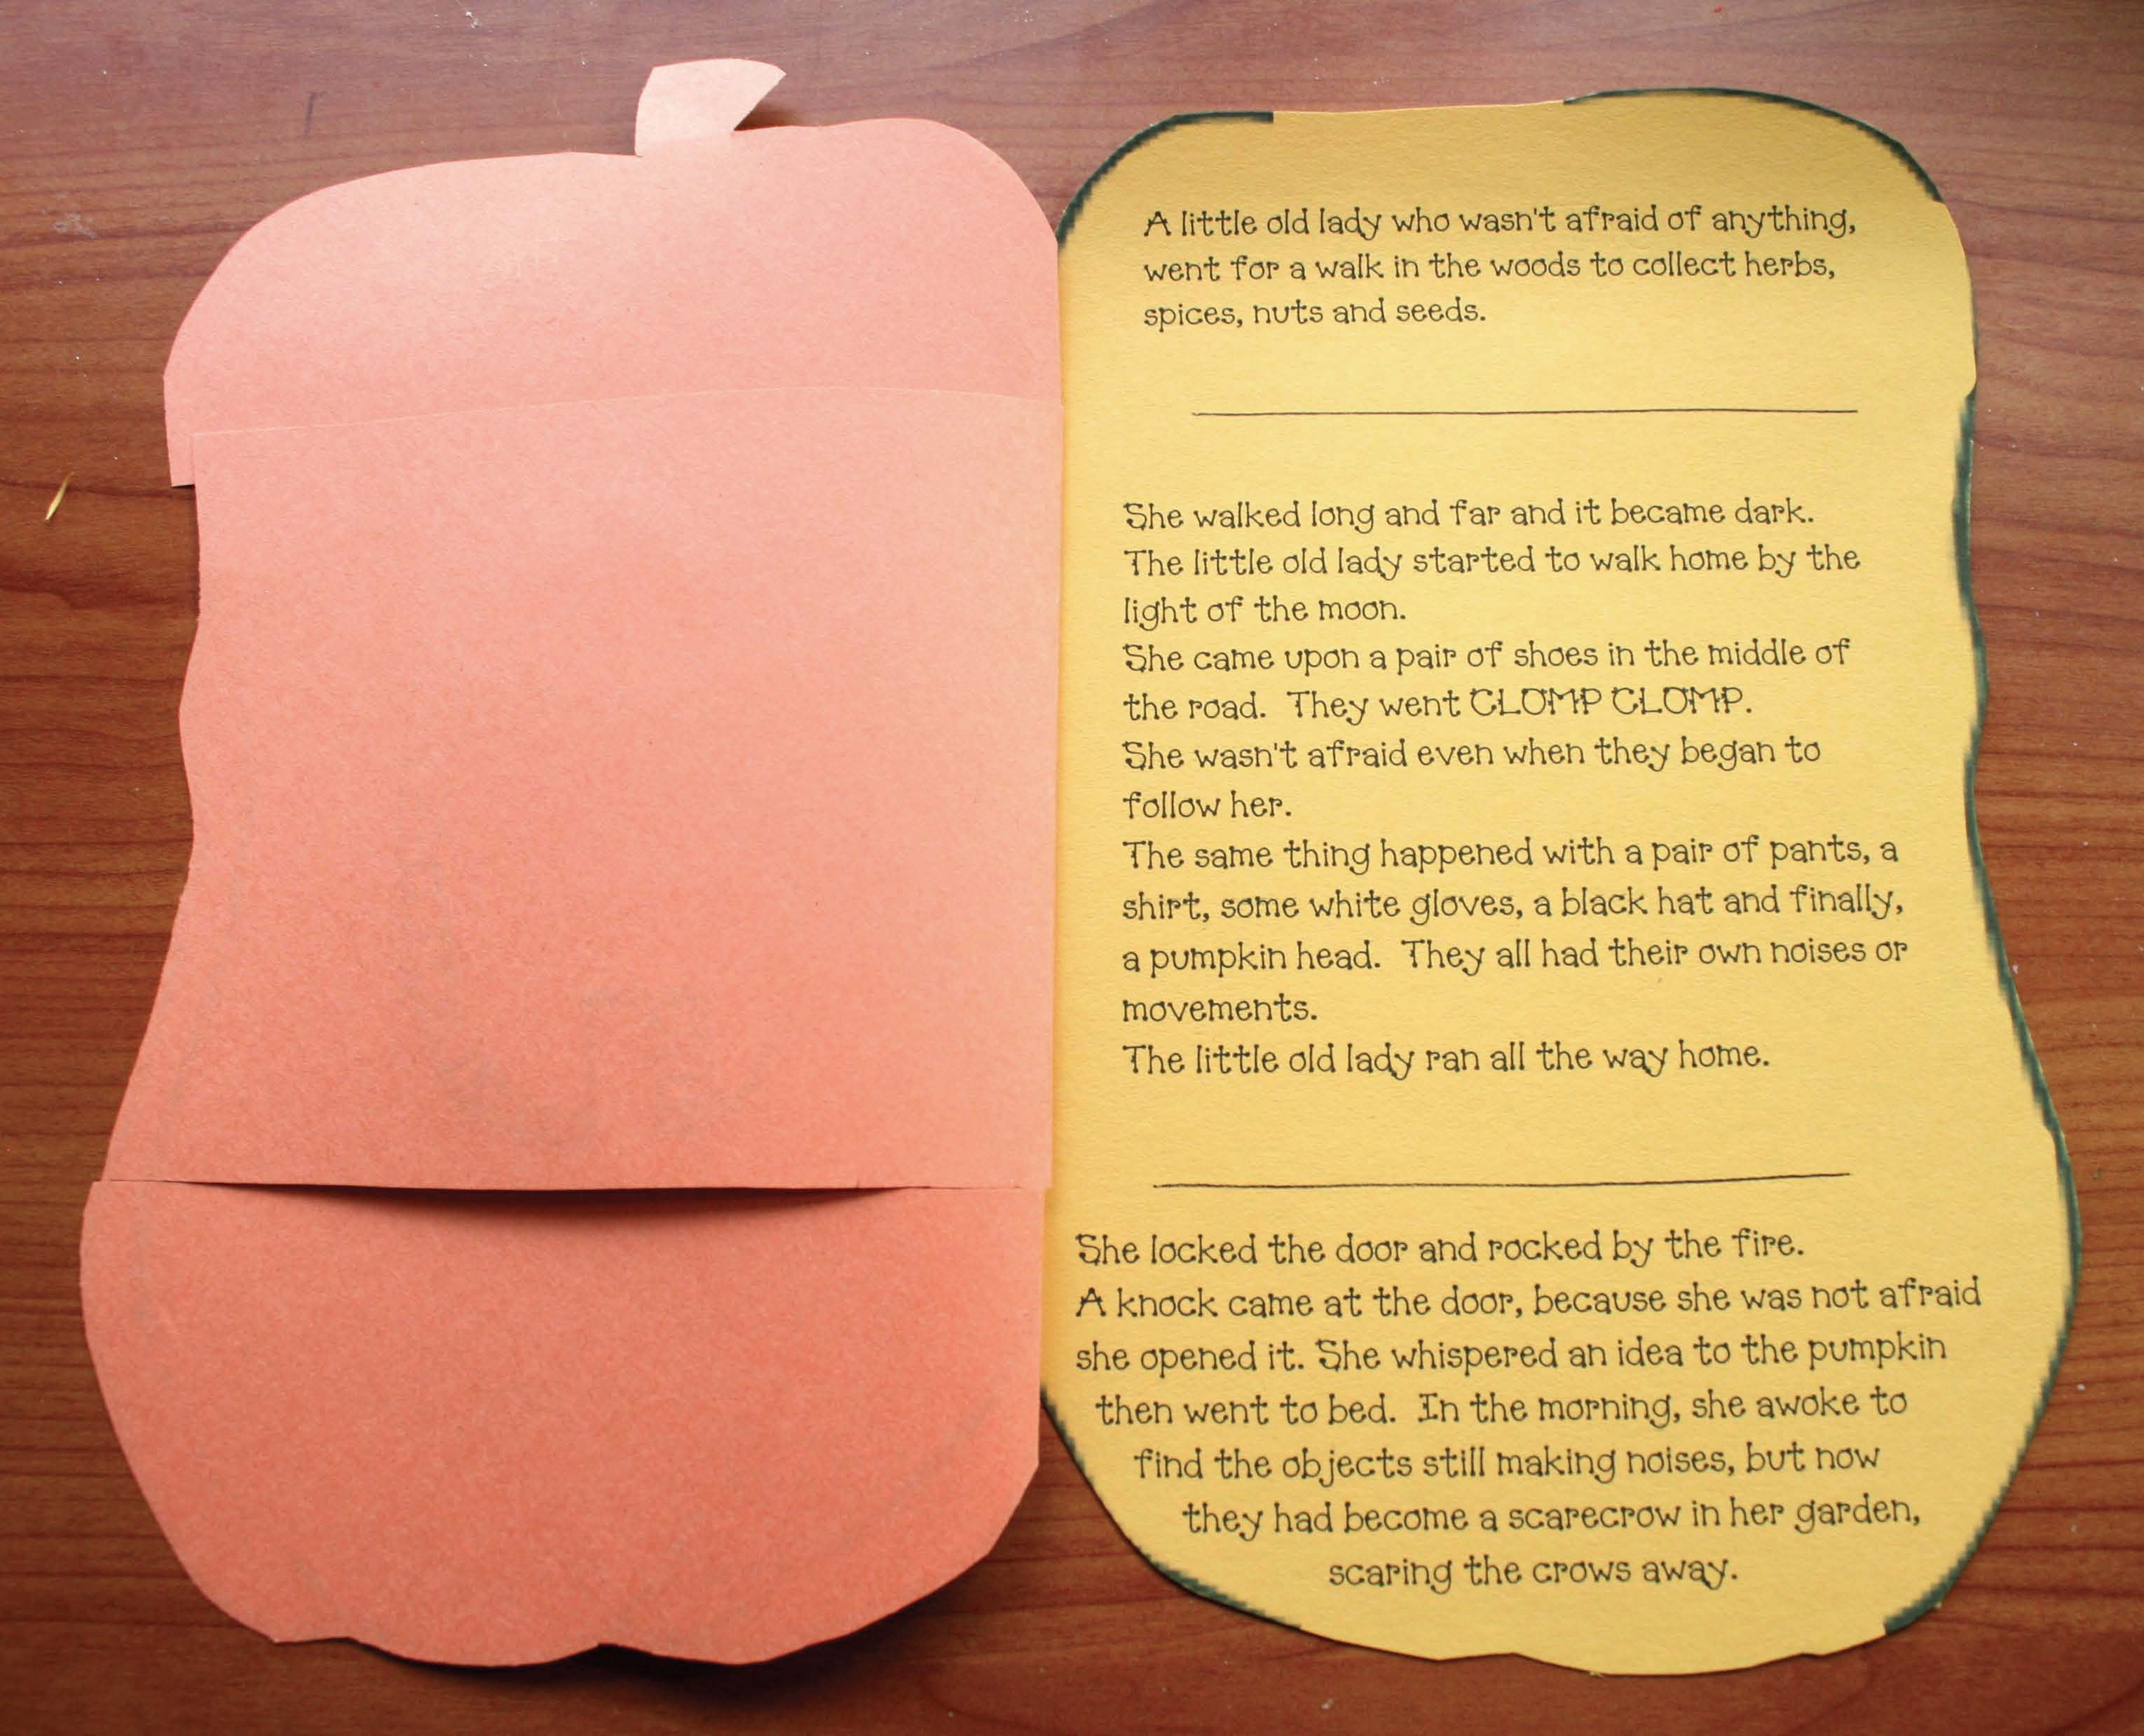 pumpkin book report, creative book reports, pumpkin activities, pumpkin crafts, common core pumpkins, venn diagram activities, beginning middle end activities, story element activities, retelling a story activities,